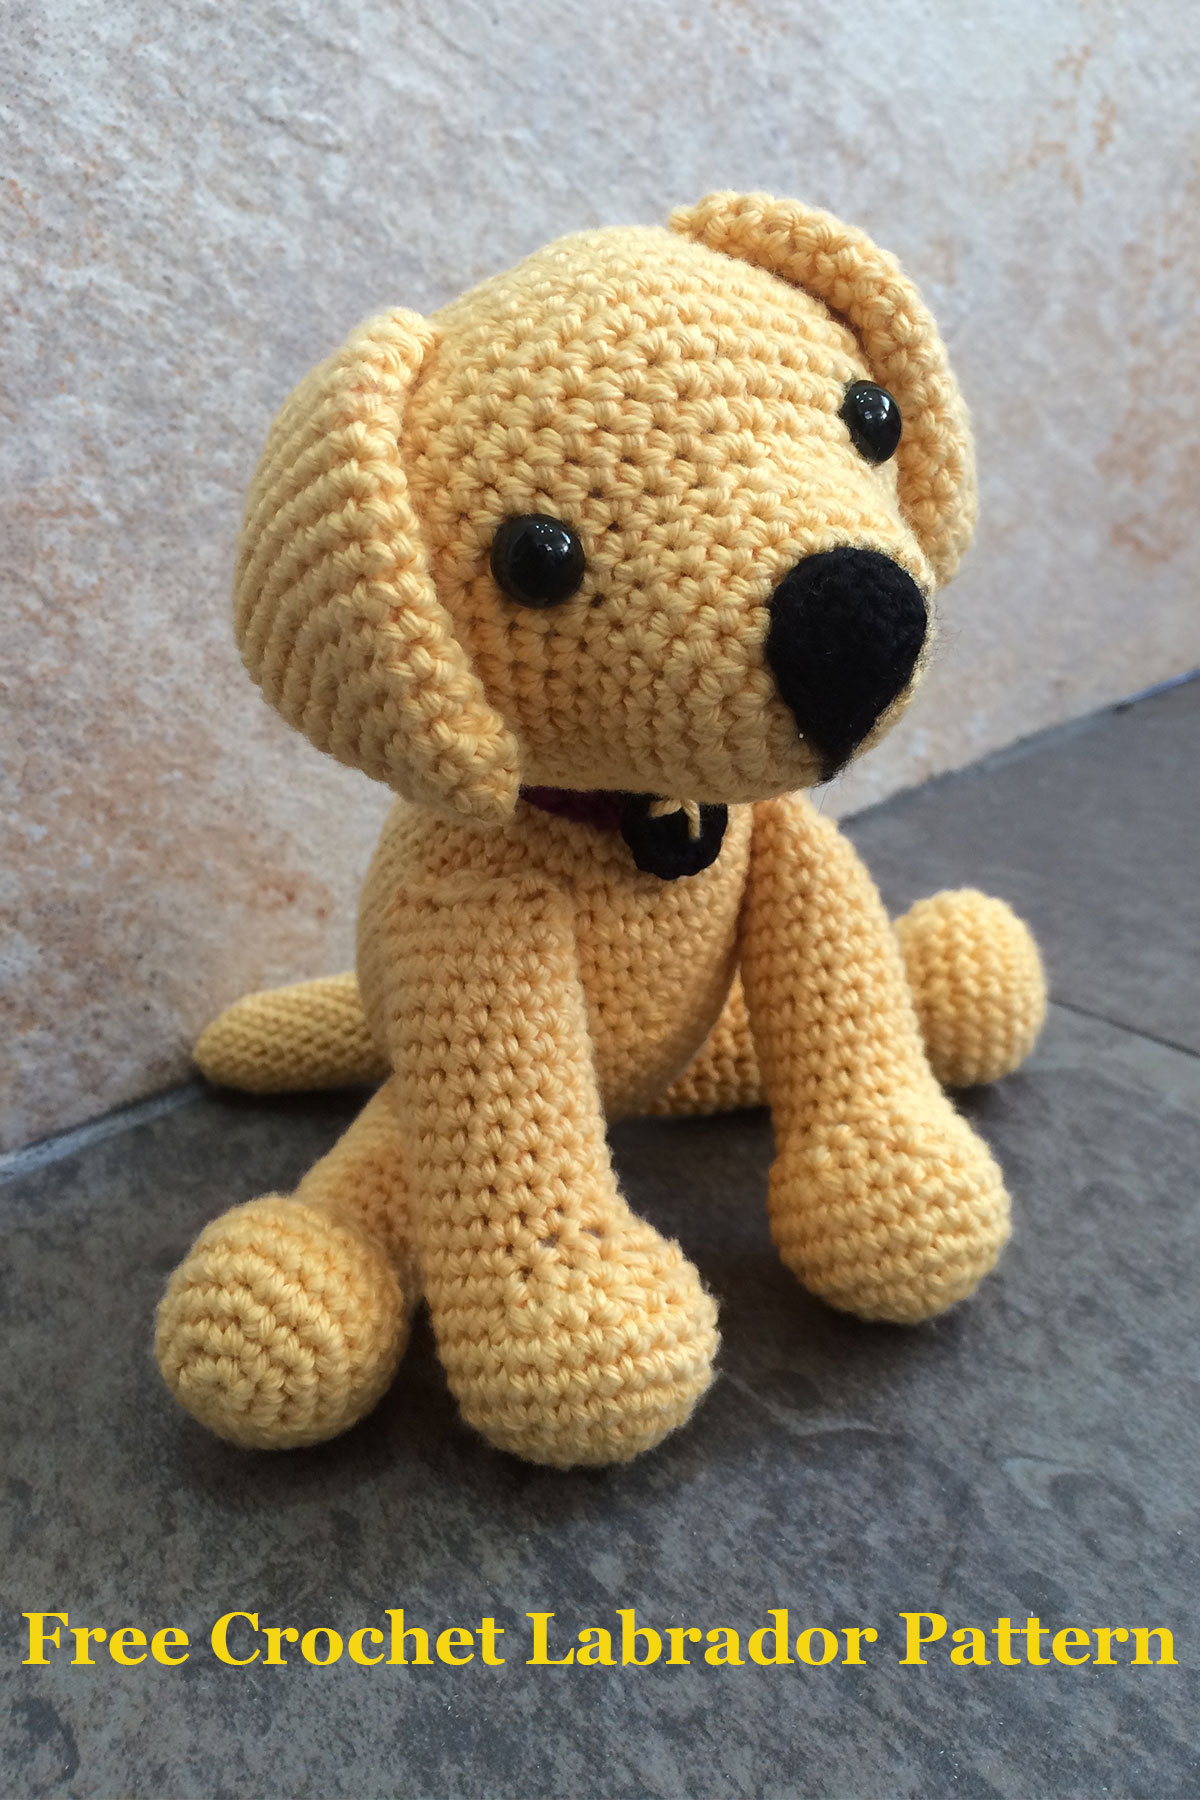 Crochet Labrador How To Make Your Own Toy Dog The Labrador Site